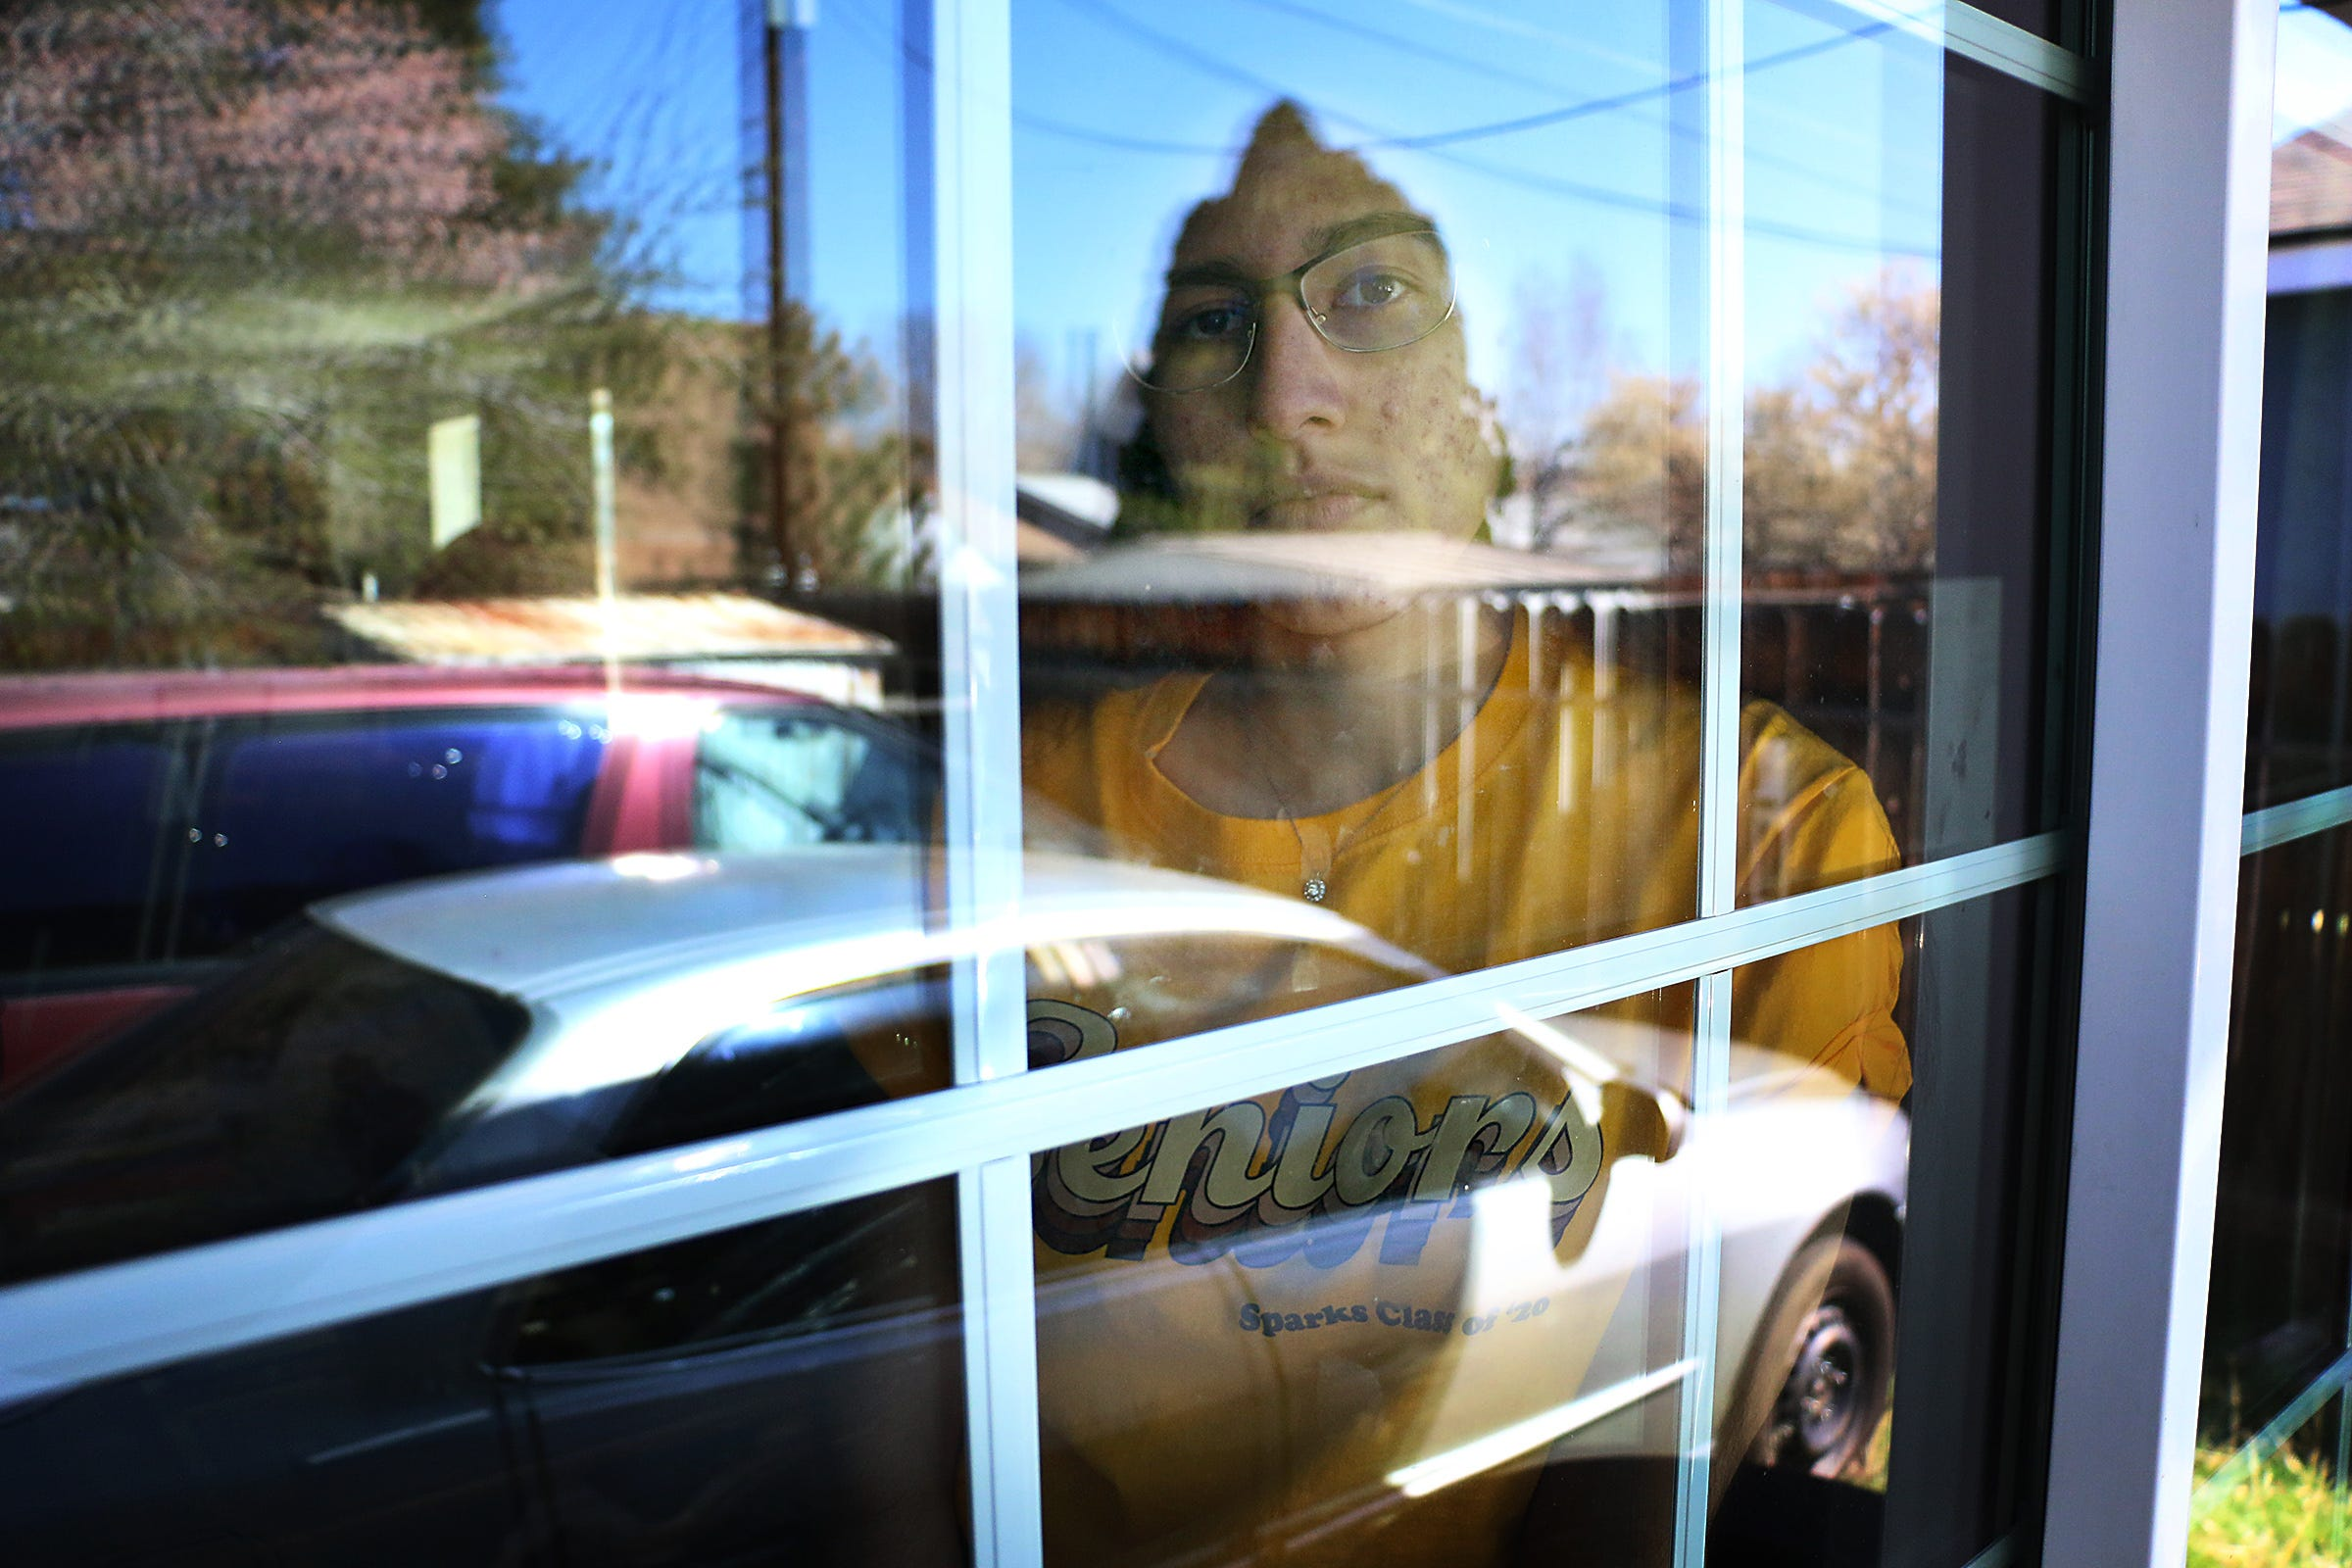 Sparks High School senior Susy Meza poses for a portrait while looking through a window in her home on April 3, 2020.